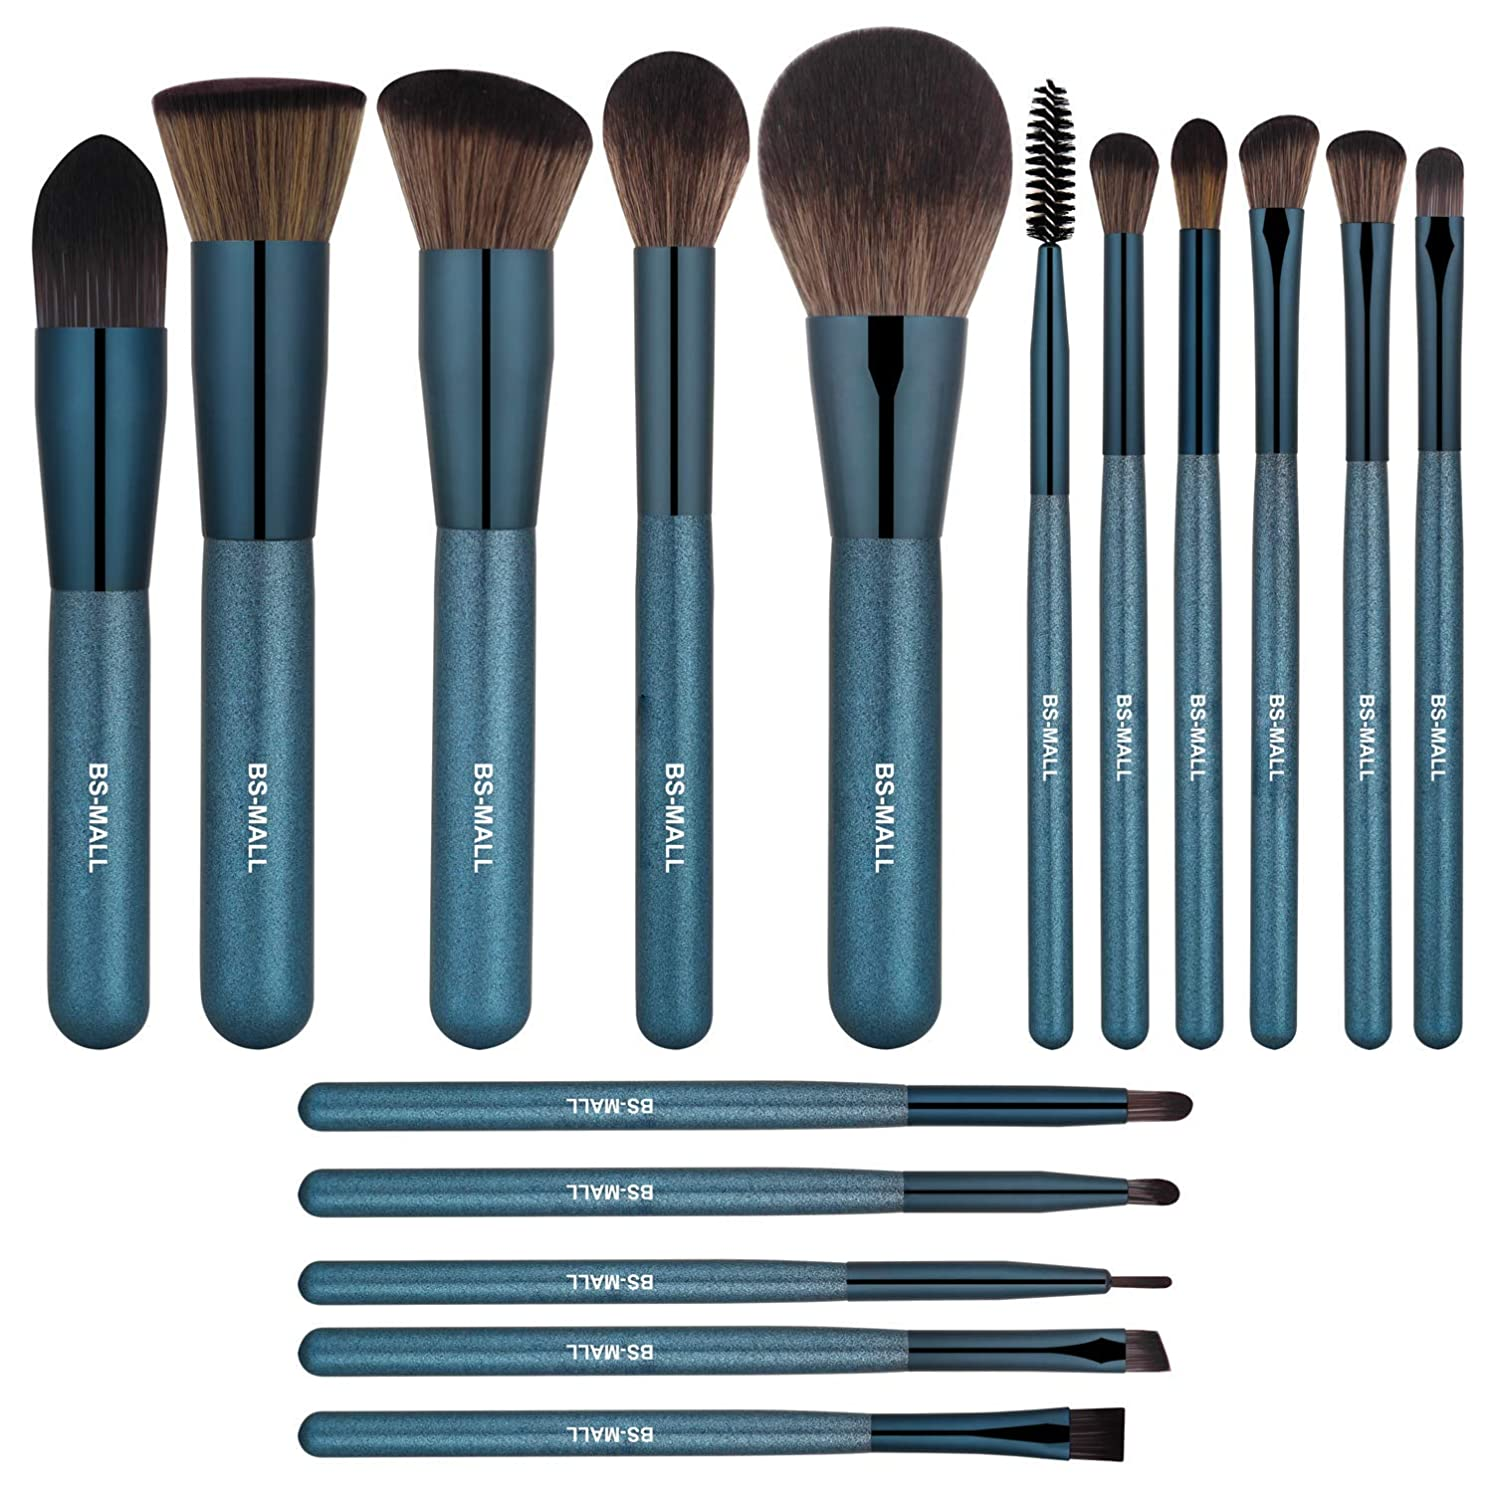 BS-MALL Professional 16 Pcs Rose Golden Make up Brushes Set - Cosmetic Eyebrow Shadow Lip Face Brushes Kit - Beauty Blending for Powder & Cream - Bronzer Concealer